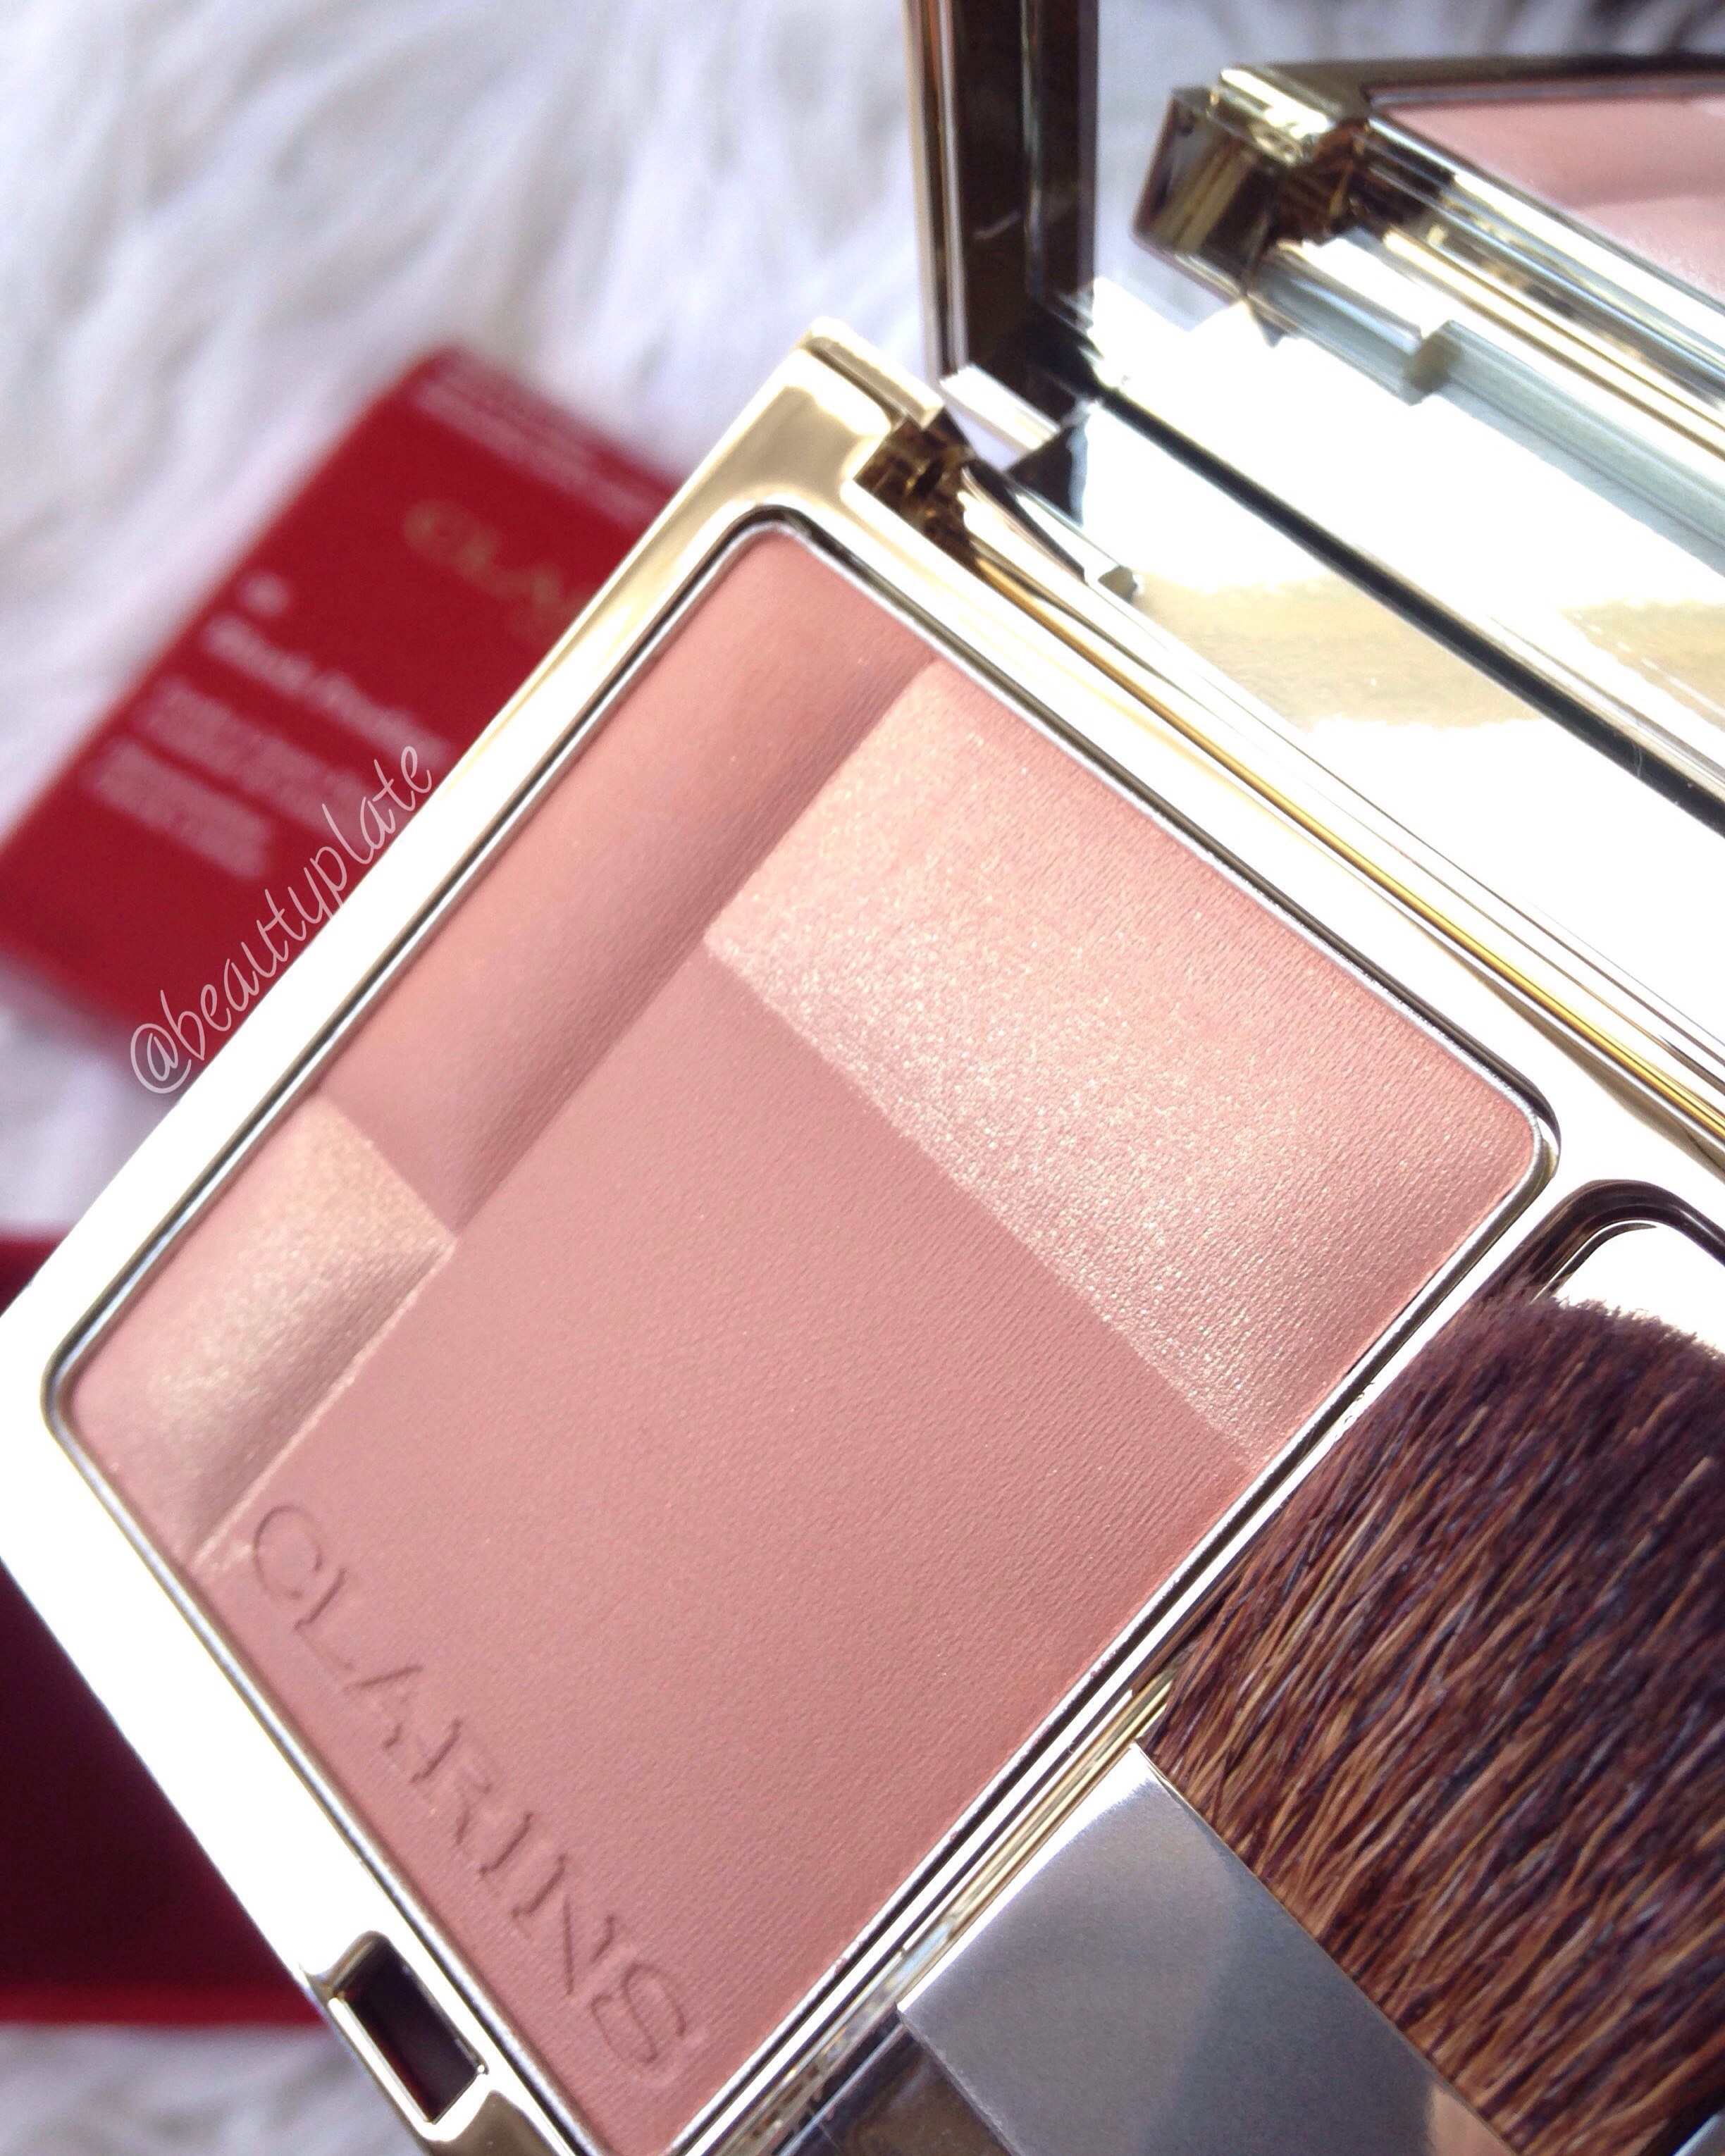 Clarins Colour Definition Fall 2011 Makeup Collection: CLARINS Blush Prodige Illuminating Cheek Colour